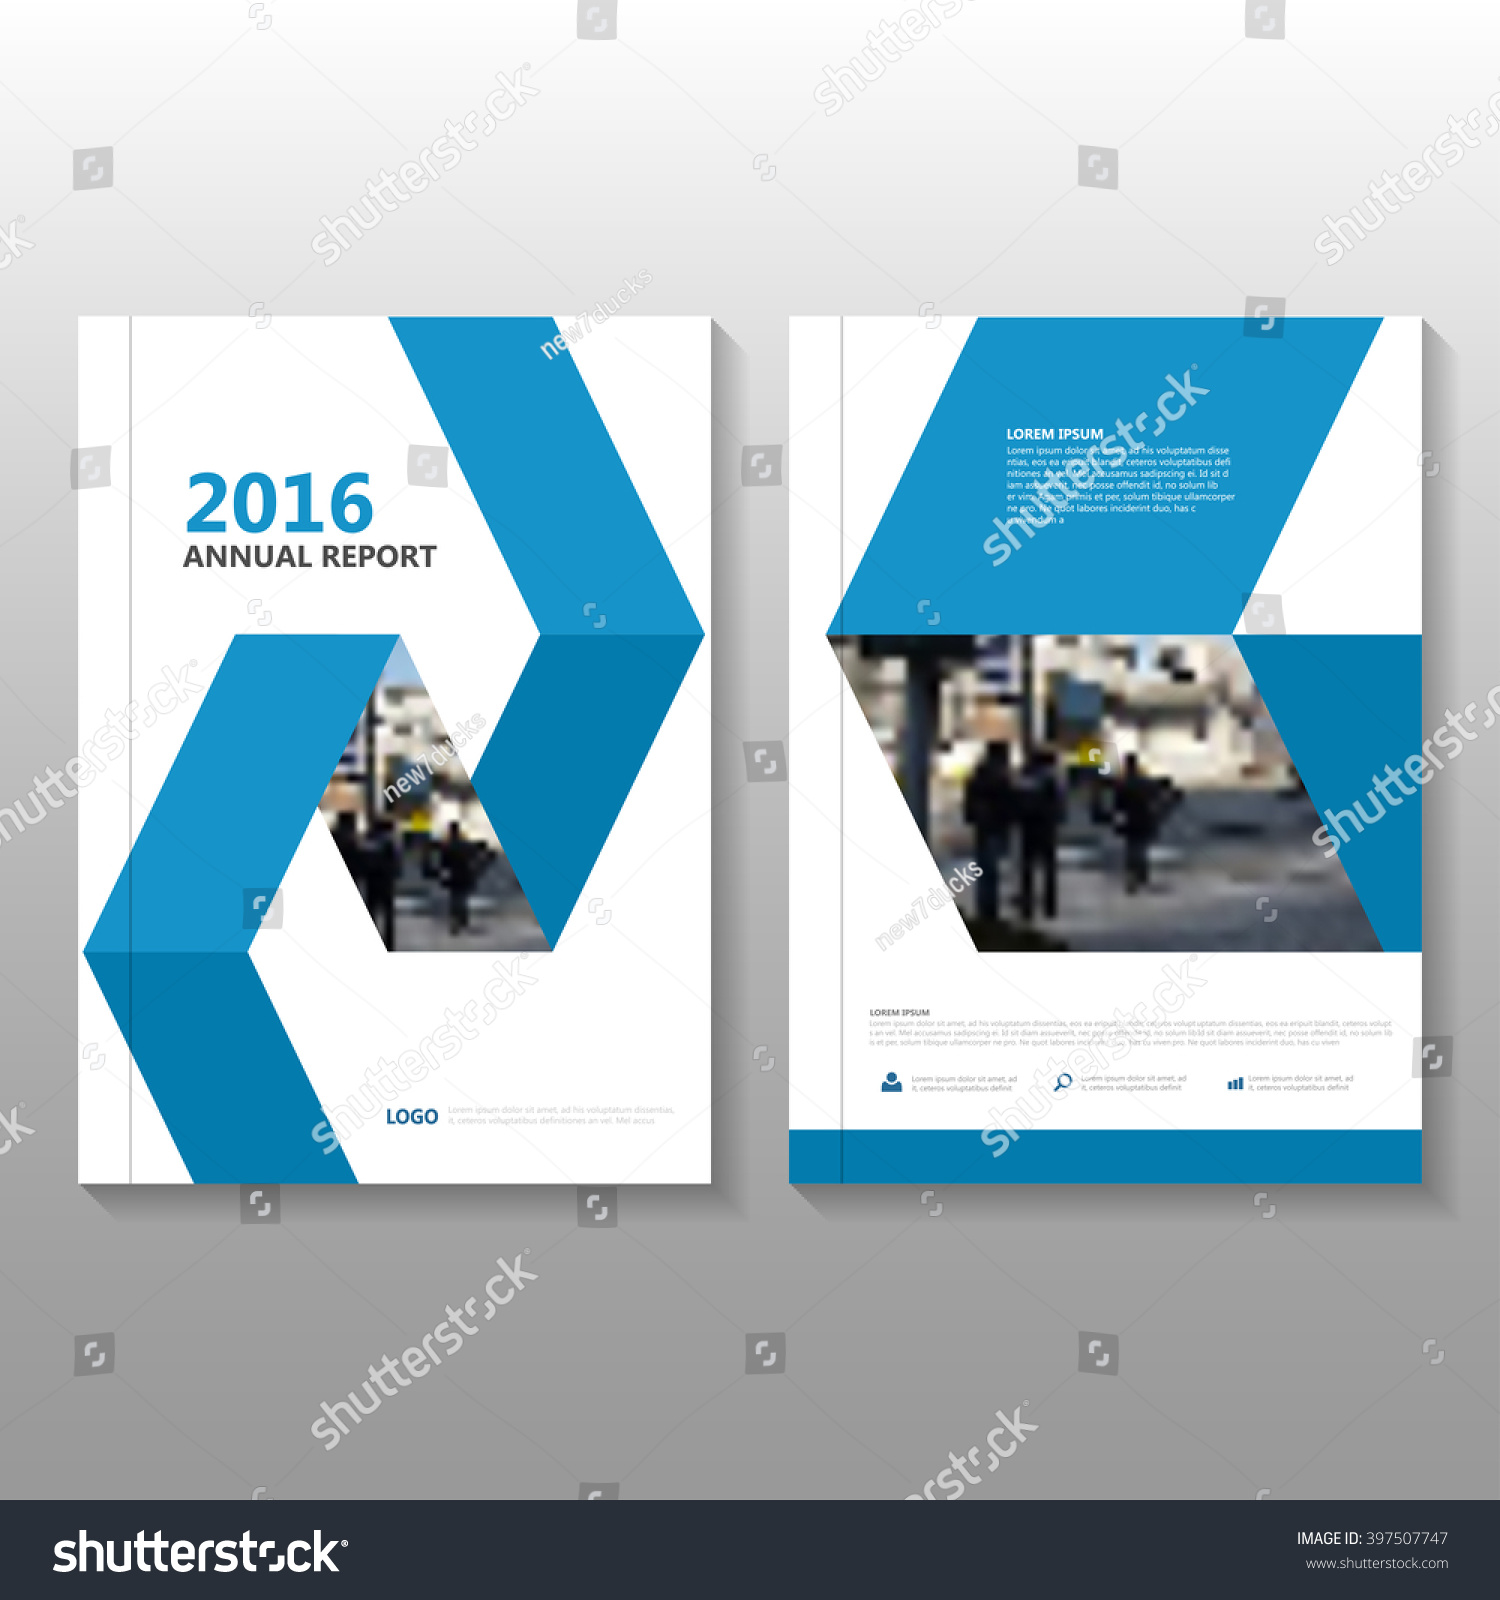 Annual Report Book Cover Design : Blue vector annual report leaflet brochure stock